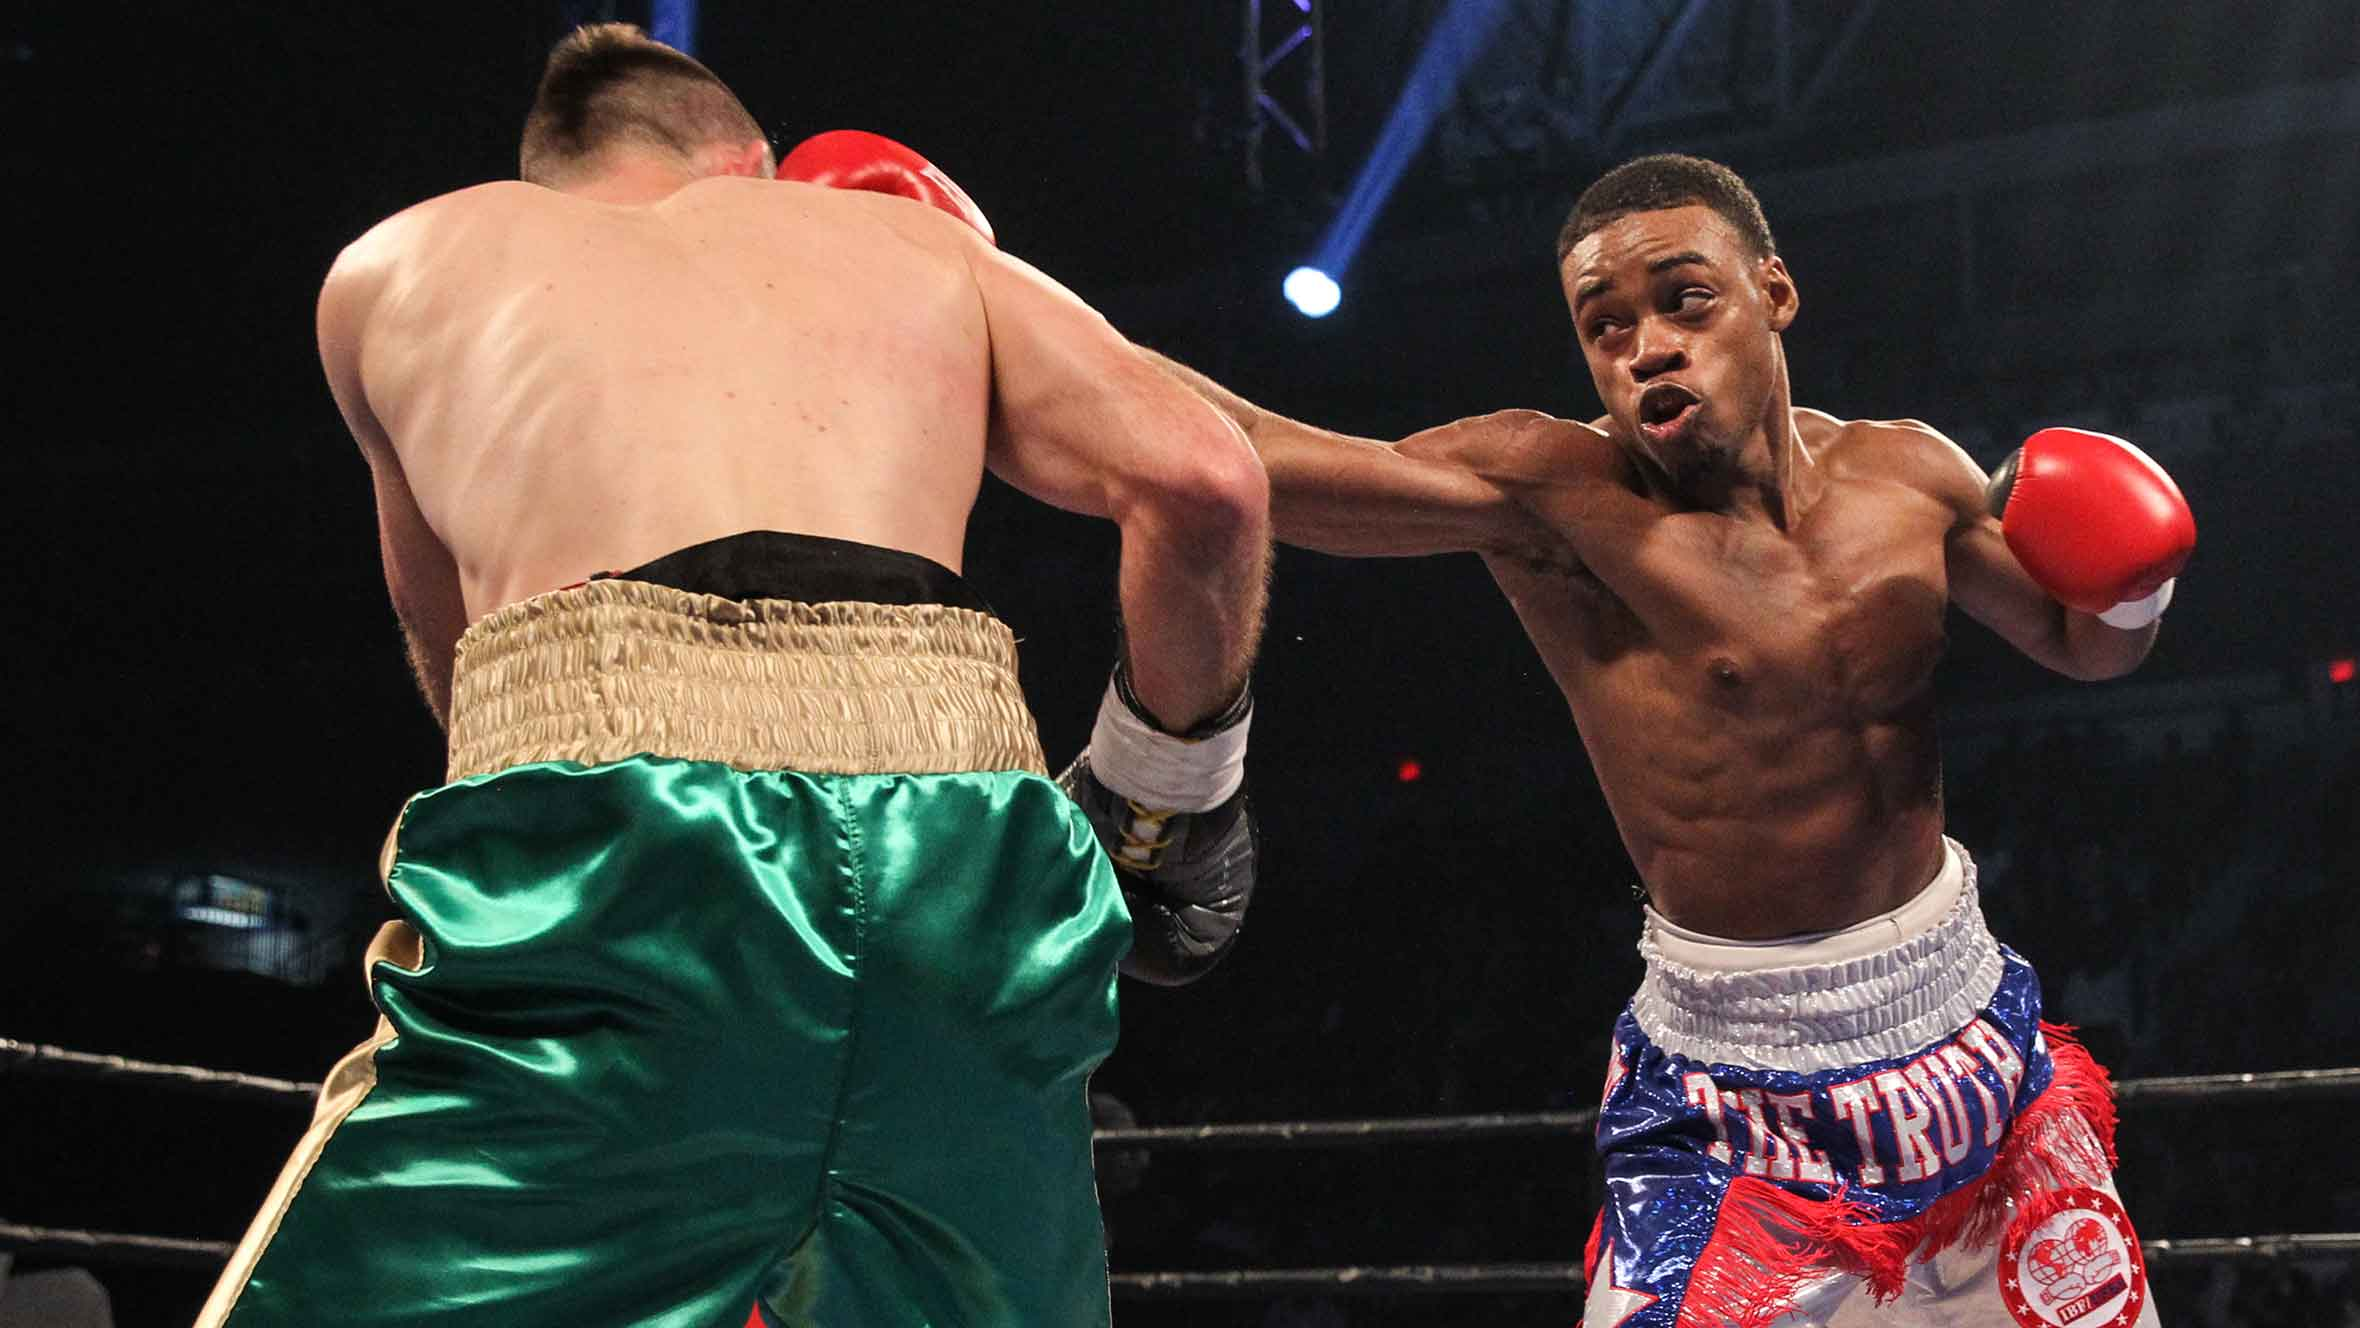 spence soaring as a pro after closing amateur career with olympic downer